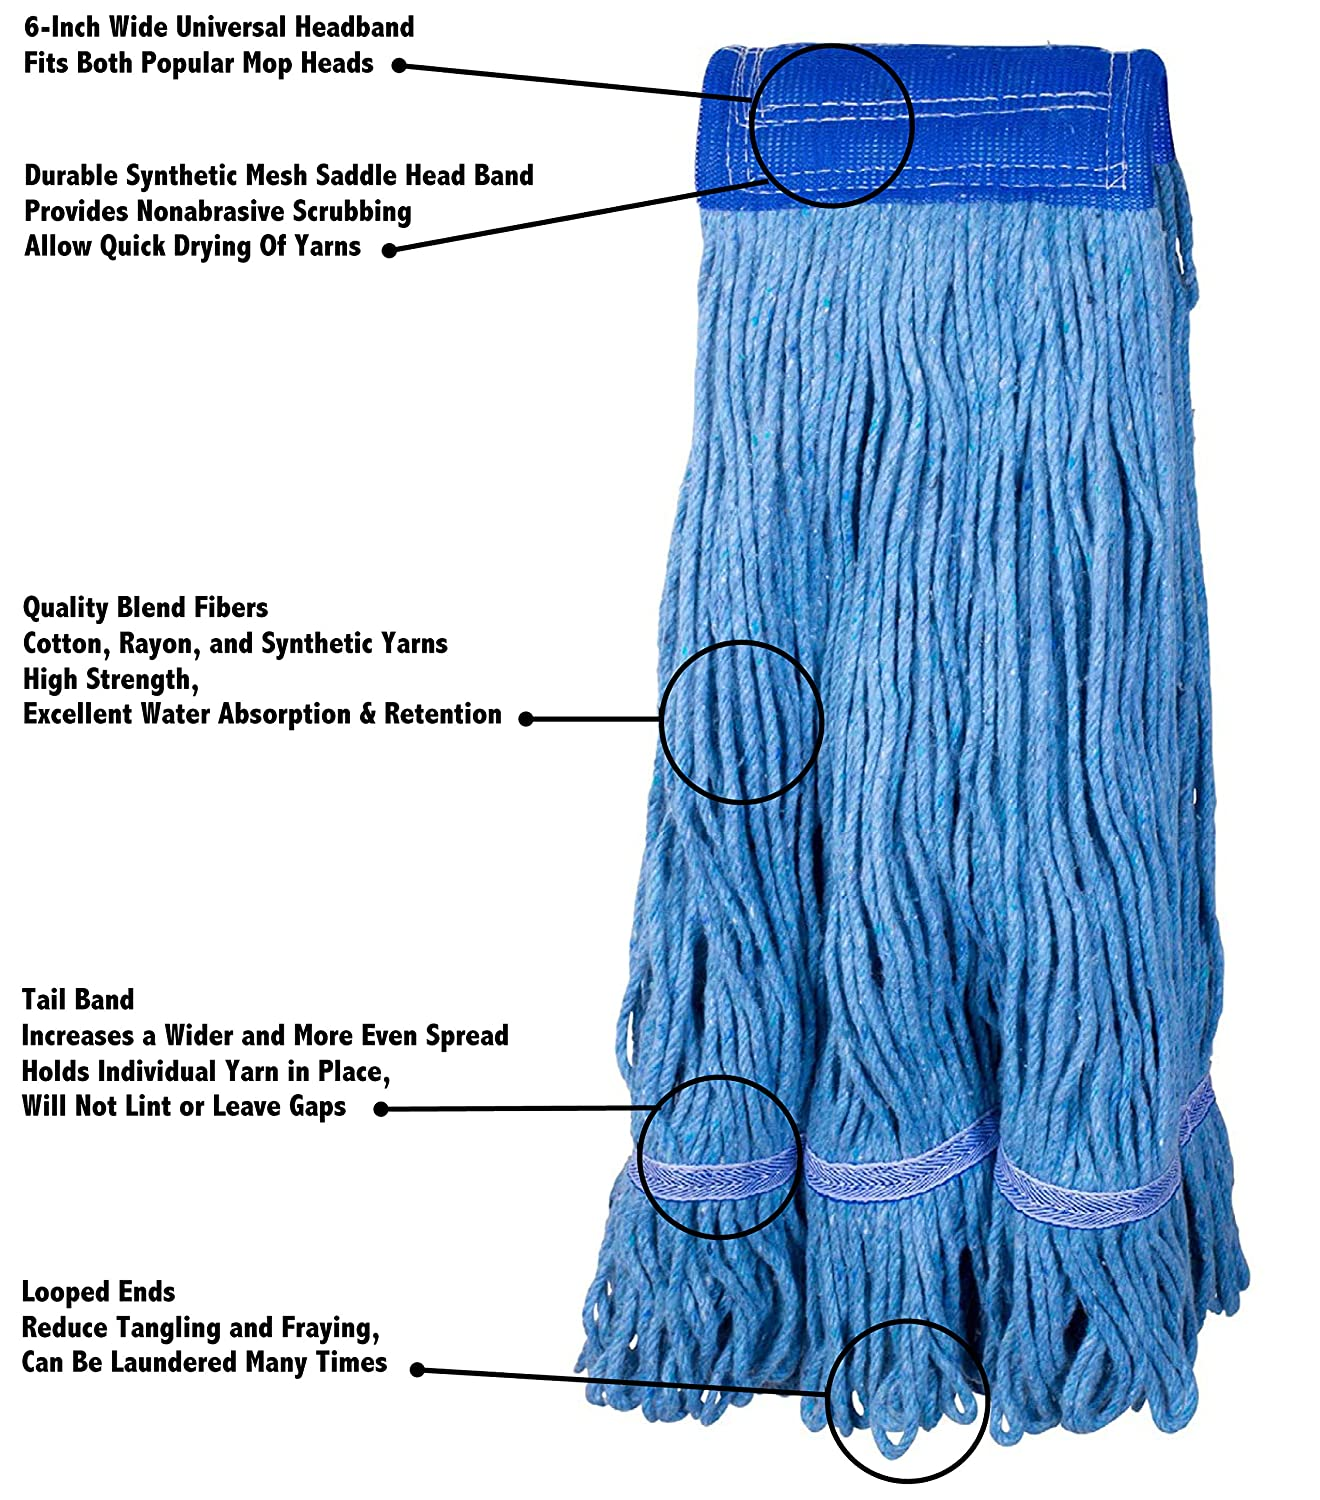 Blended Yarn 32 Ounce Supply Guru Commercial Mop Head With Nylon Scrubbing Pad 4-Ply Blue. Universal Headband X-Large